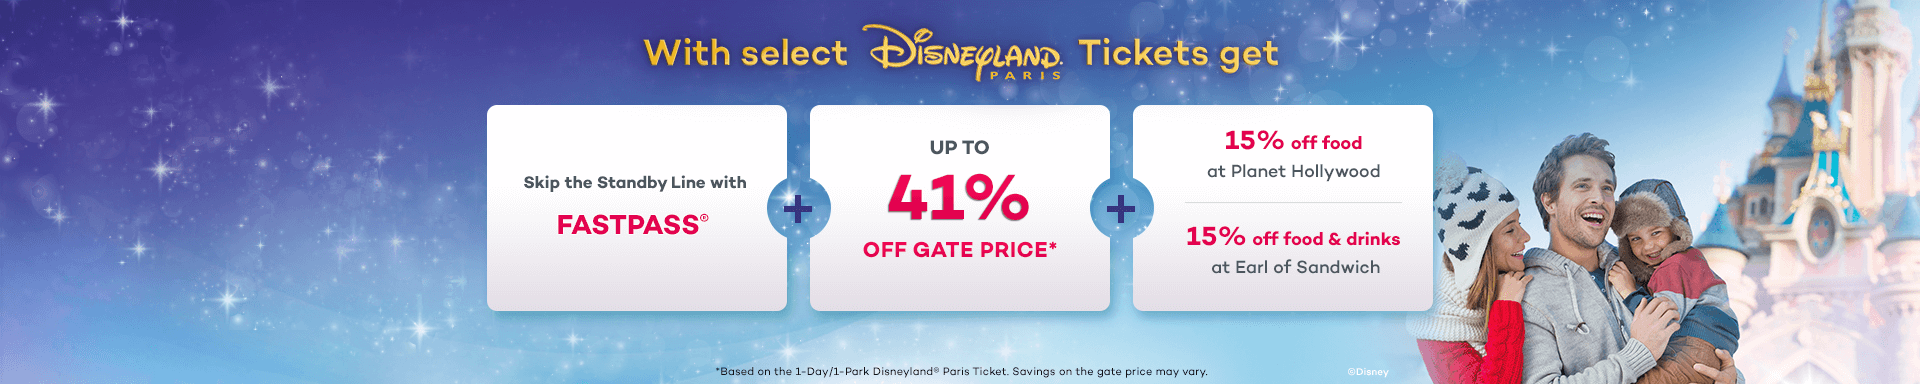 Save up to 41% Off the Gate Price at Disneyland Paris